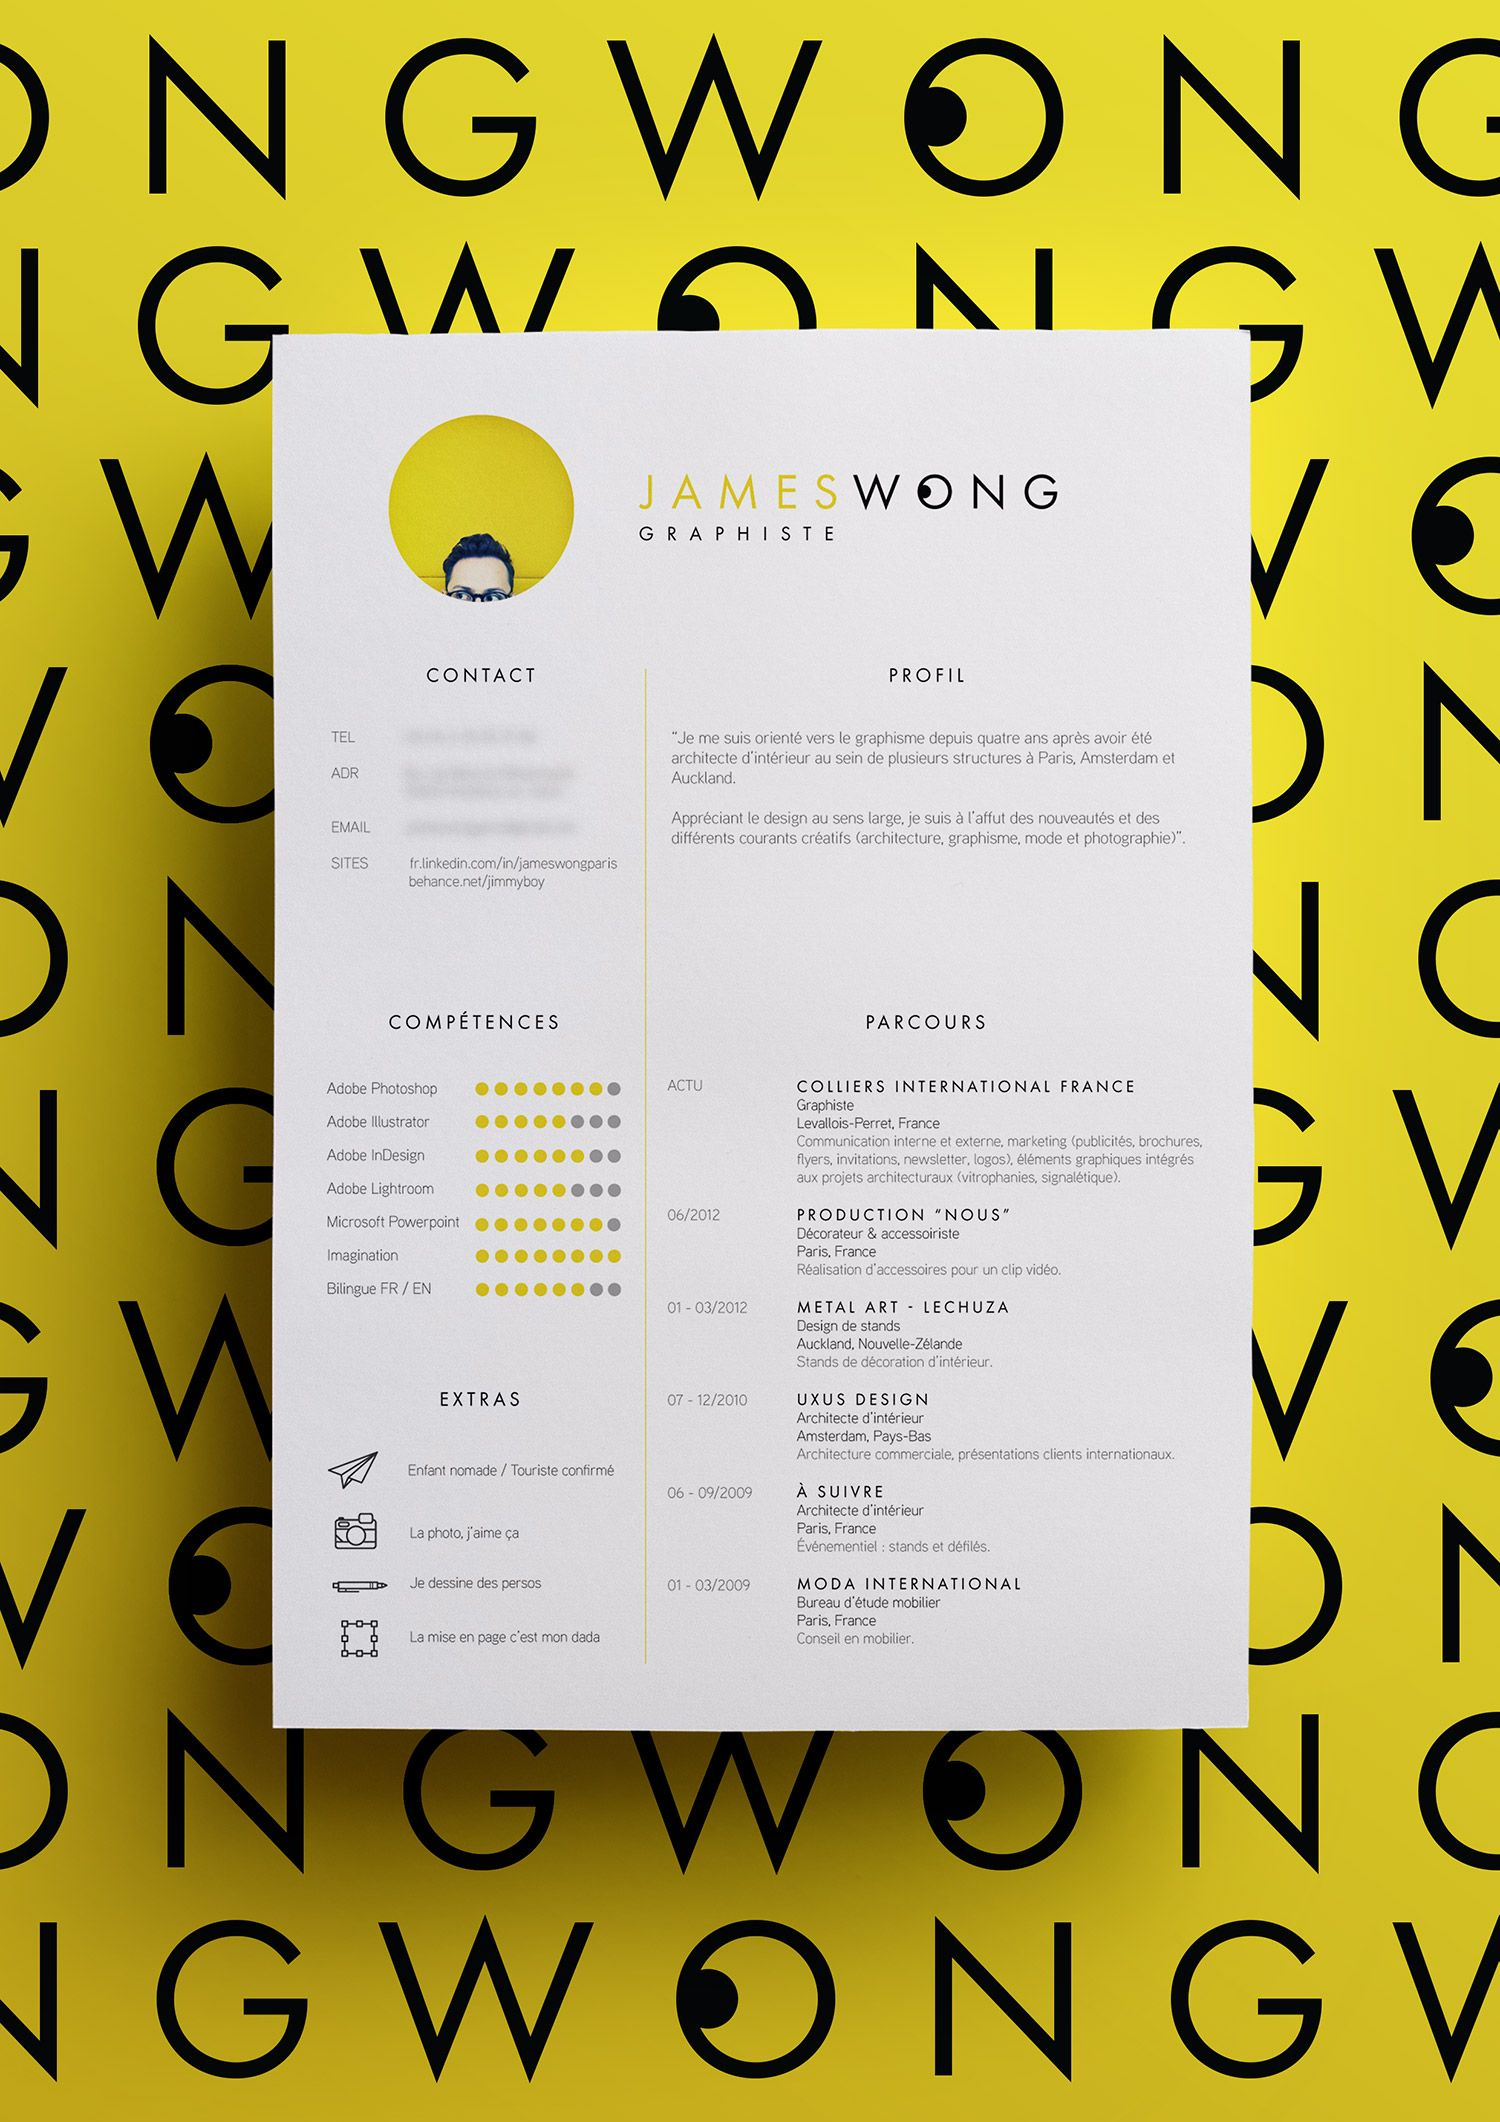 25 Creative and Beautiful Resume & CV Examples